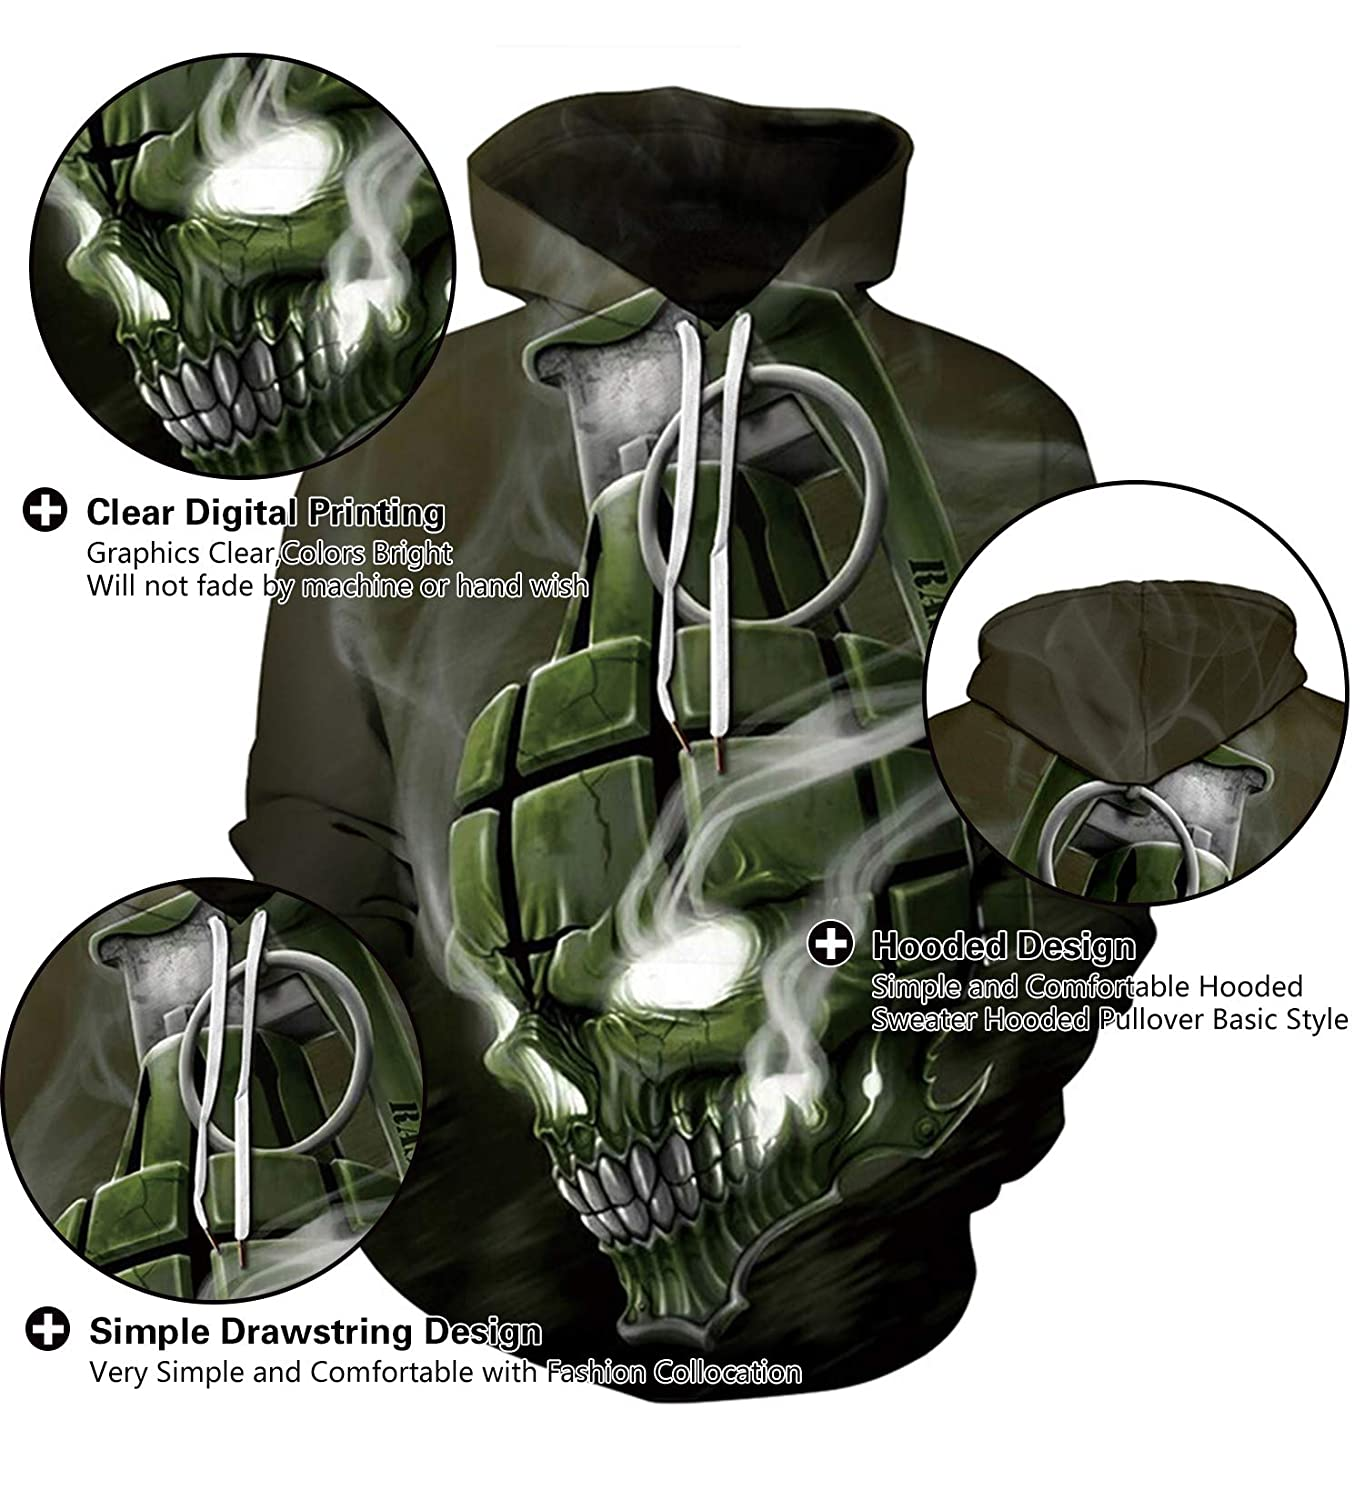 8603da31e8be Amazon.com  Memoryee Unisex 3D Skull Head Hoodie Novelty Personalised  Sweatshirt Pullover Hooded Stretch S-3XL  Clothing